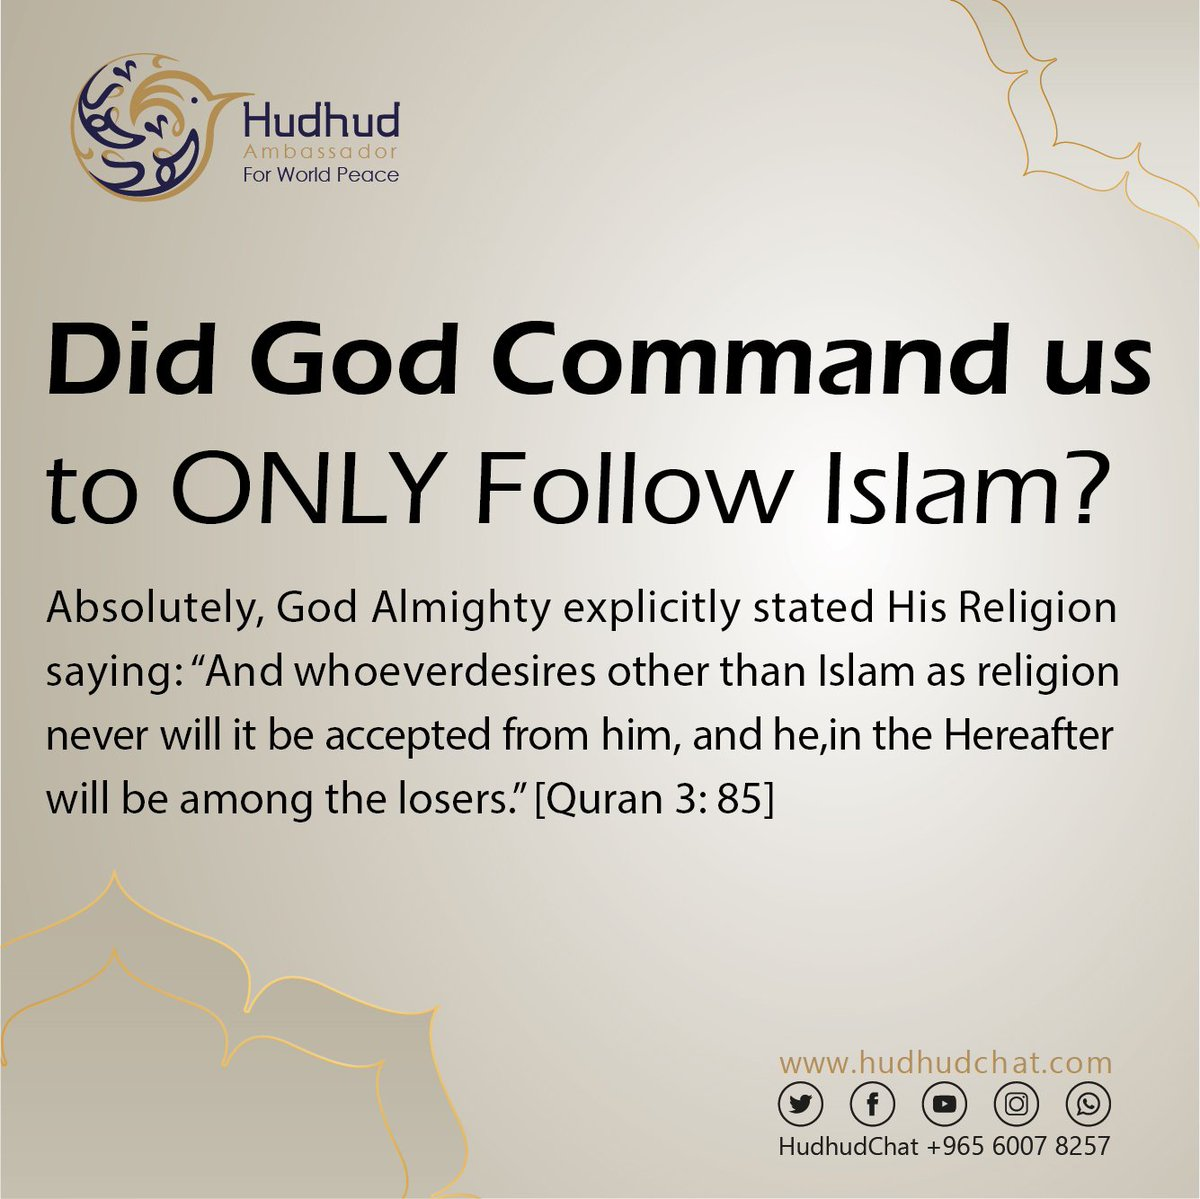 Did #God Command us to ONLY Follow #Islam?  Would you like to learn more? Please come and chat with us live !  http://www. hudhudchat.com       #HudhudChat  #PBB4thBig8tingLinggo #IslamIsDivine #UK #USA #Canada<br>http://pic.twitter.com/01gd9gqa2S